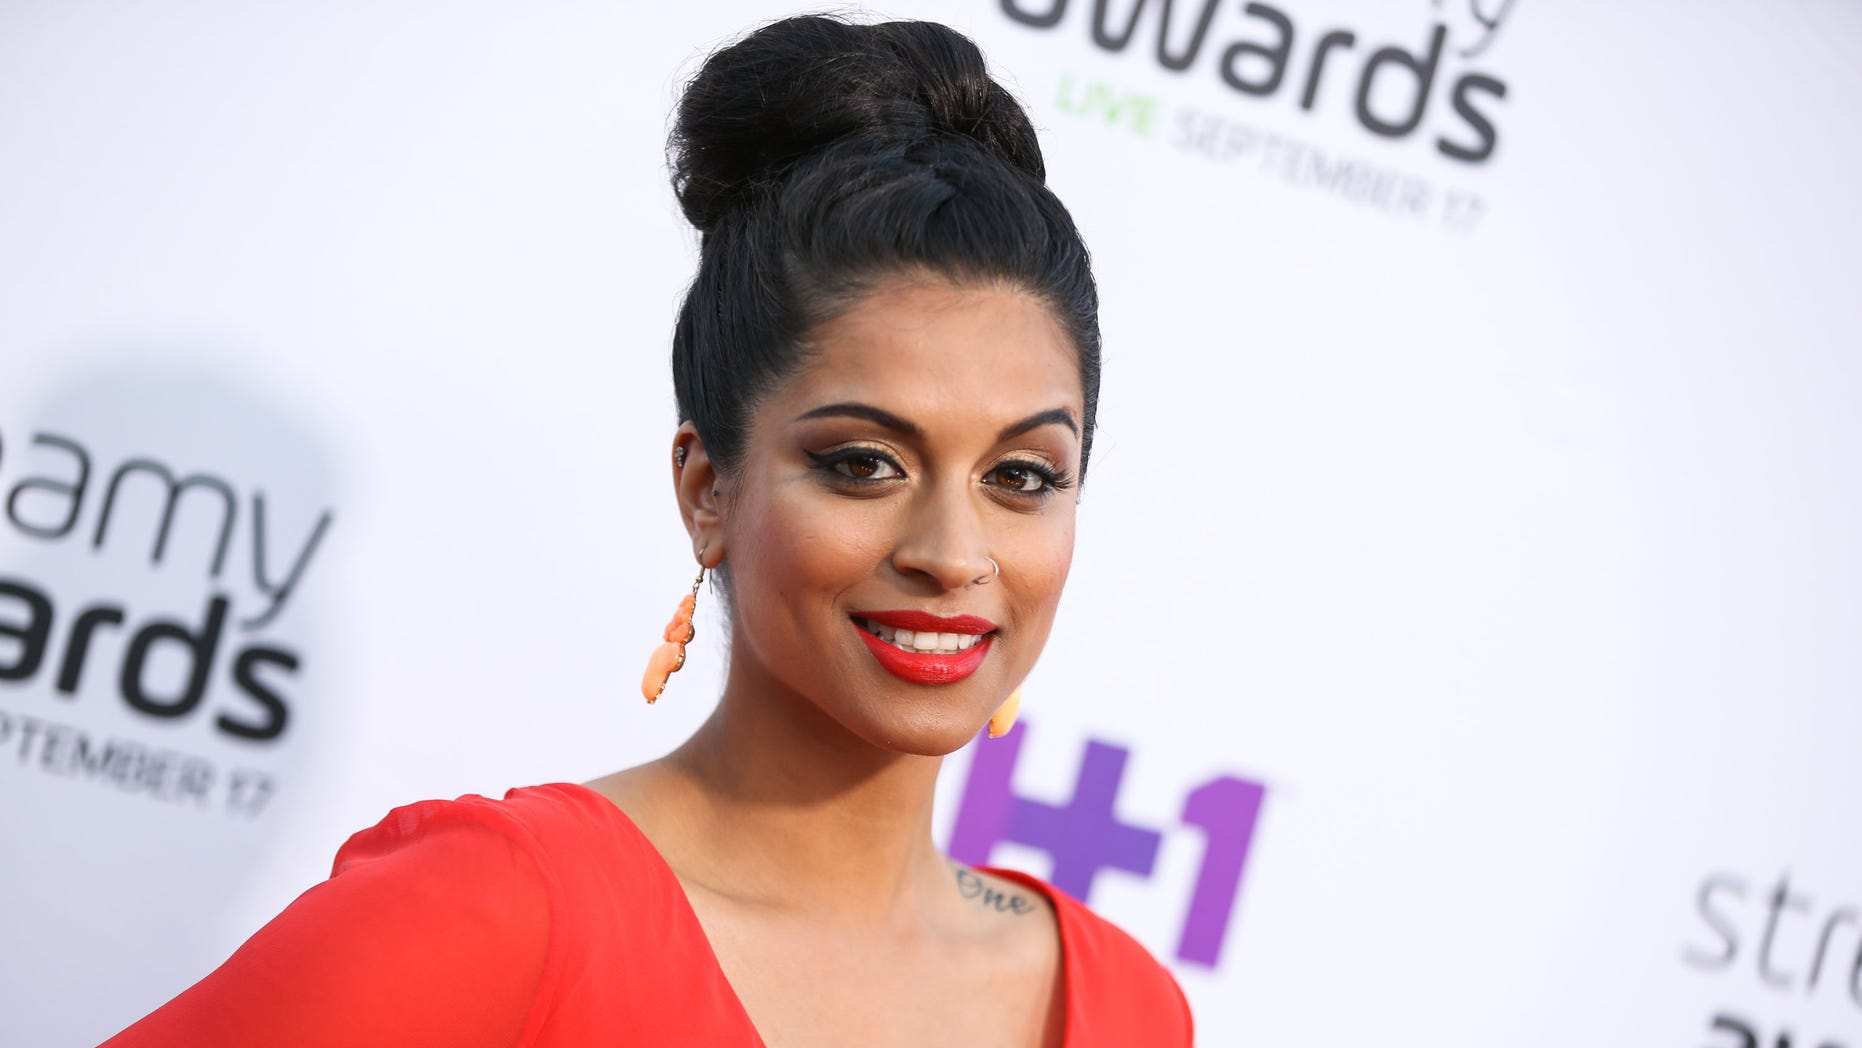 """FILE - In this Sept. 17, 2015 file photo, Lilly Singh arrives at the 5th Annual Streamy Awards at the Hollywood Palladium in Los Angeles. """"Lazer Team"""" was the most funded original film in Indiegogos history, and it's been selling out hundreds of theaters for fan screenings since Jan. 27, 2016. In addition to """"Lazer Team,"""" YouTube Originals is launching with a documentary profiling YouTube comedienne Lilly """"Superwoman"""" Singh embarking on a world tour, the dance flick """"Dance Camp"""" starring young Internet personalities and a reality series centering on top YouTuber Felix """"PewDiePie"""" Kjellberg living out his nightmares. (Photo by Rich Fury/Invision/AP, File)"""